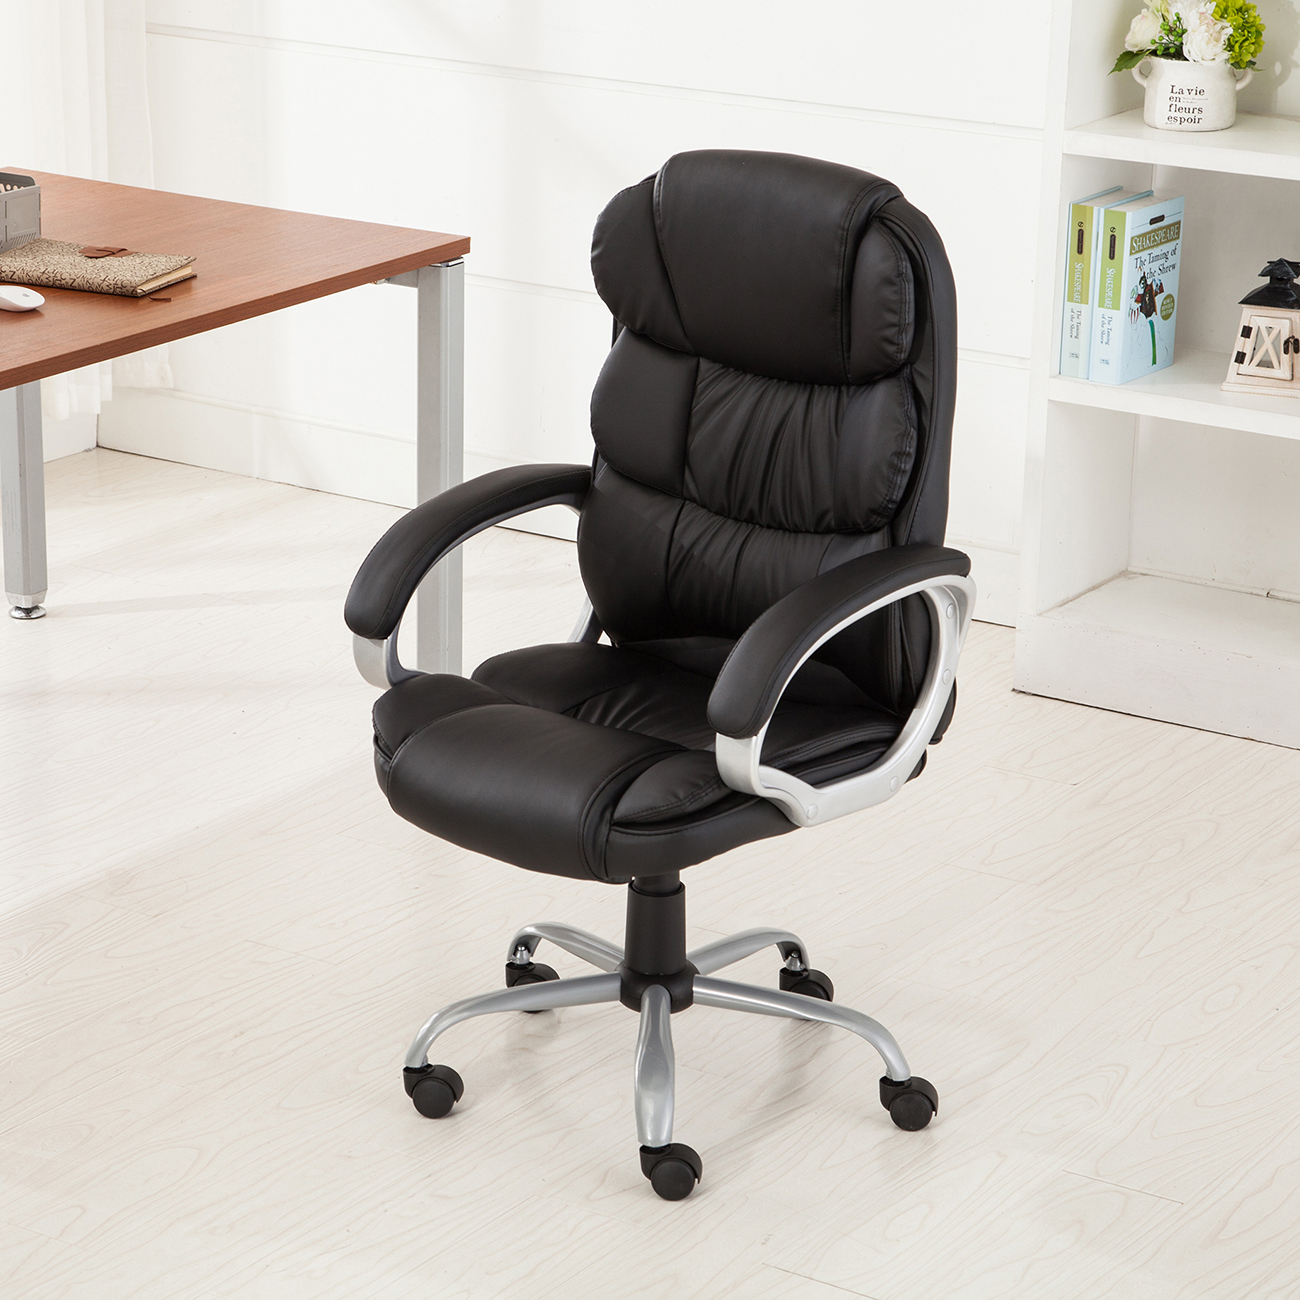 ergonomic high back executive best desk task office chair black mocha